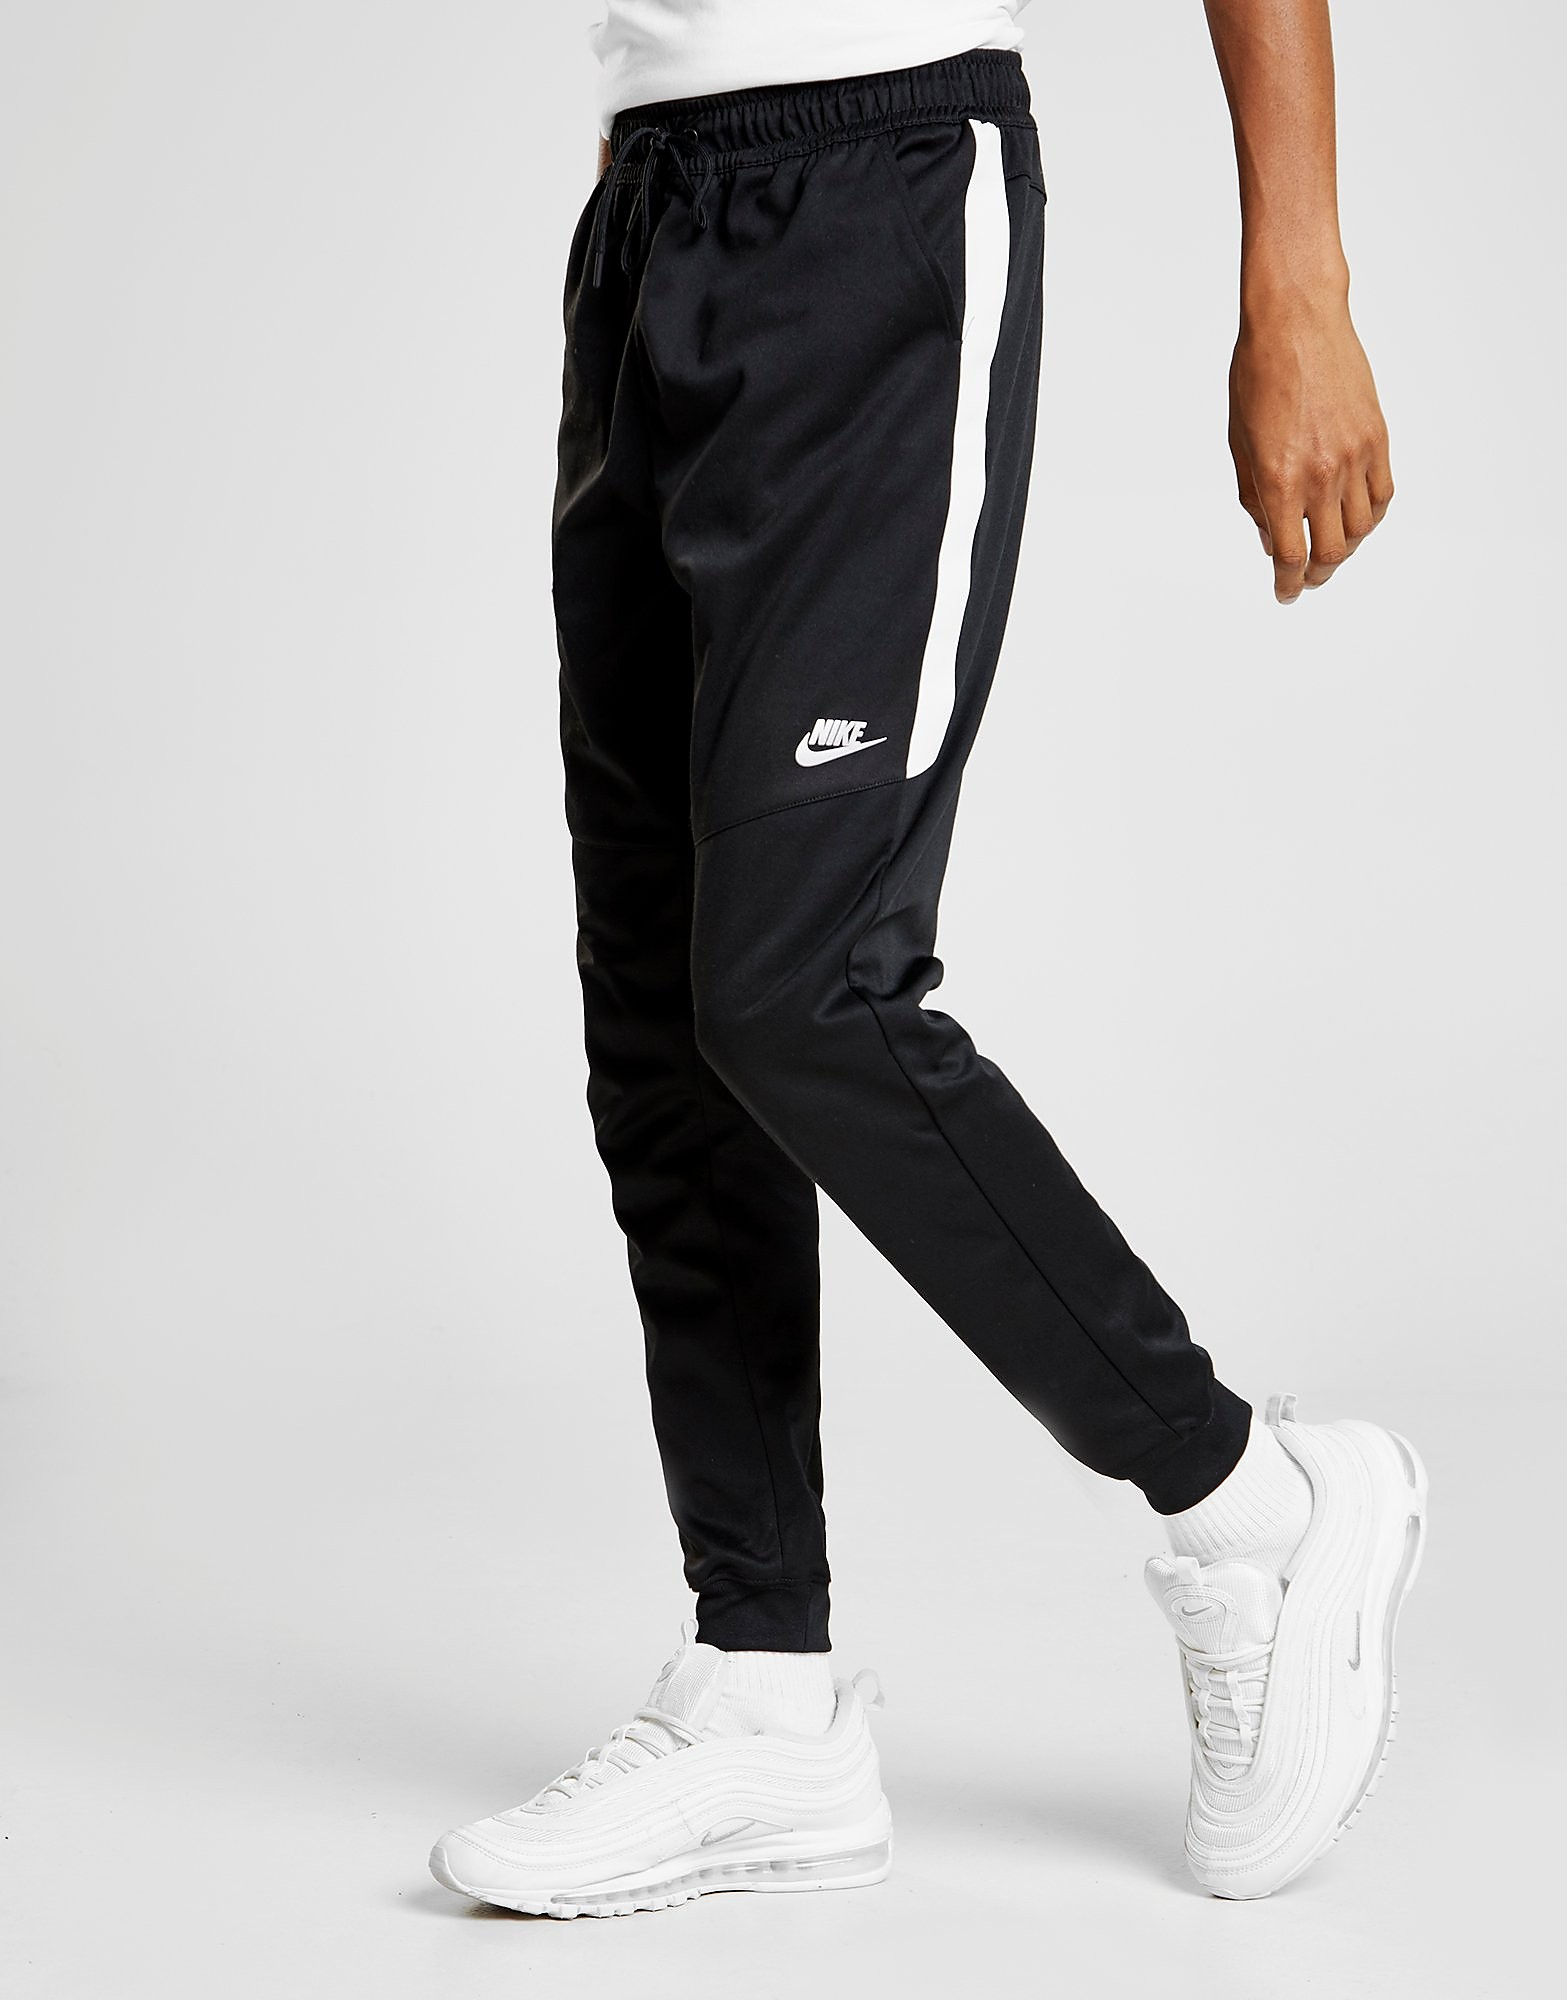 Nike Tribute DC-joggingbroek